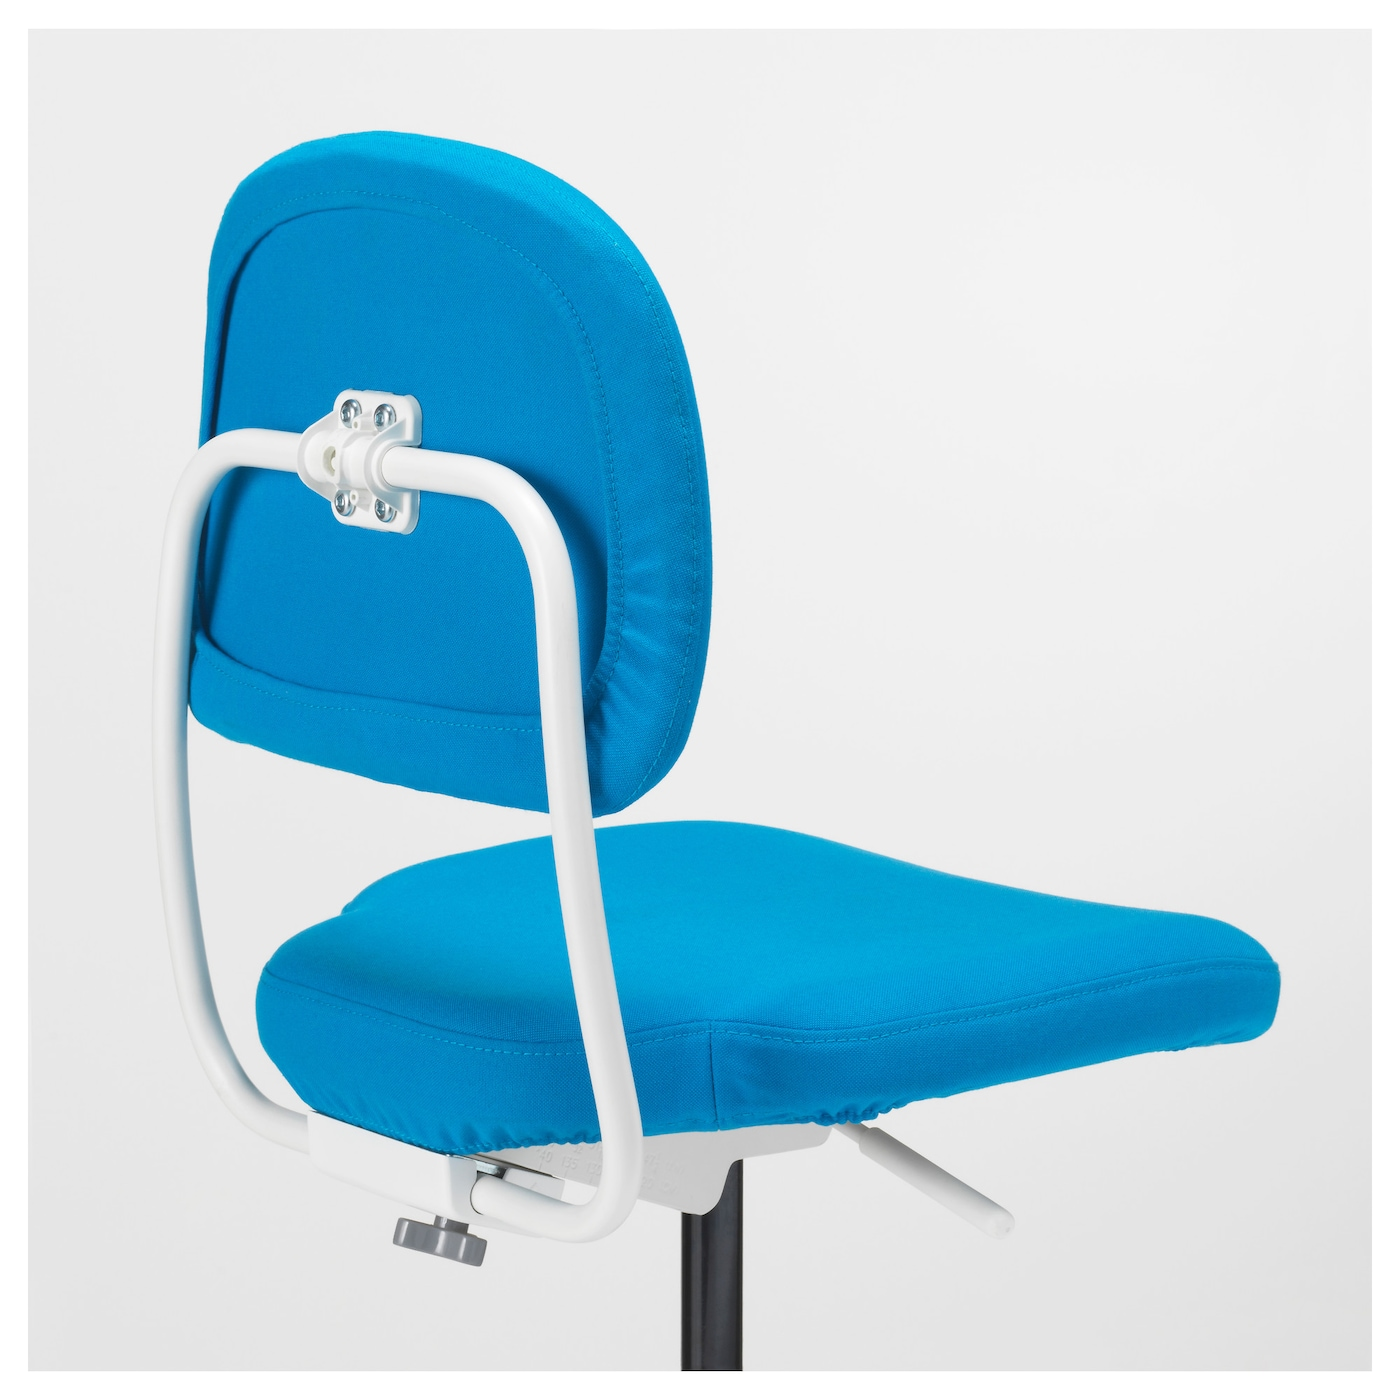 ll read desk blue products about en gb l ngfj stools black chair chairs terms the guarantee in swivel year gunnared benches ikea seating office brochure